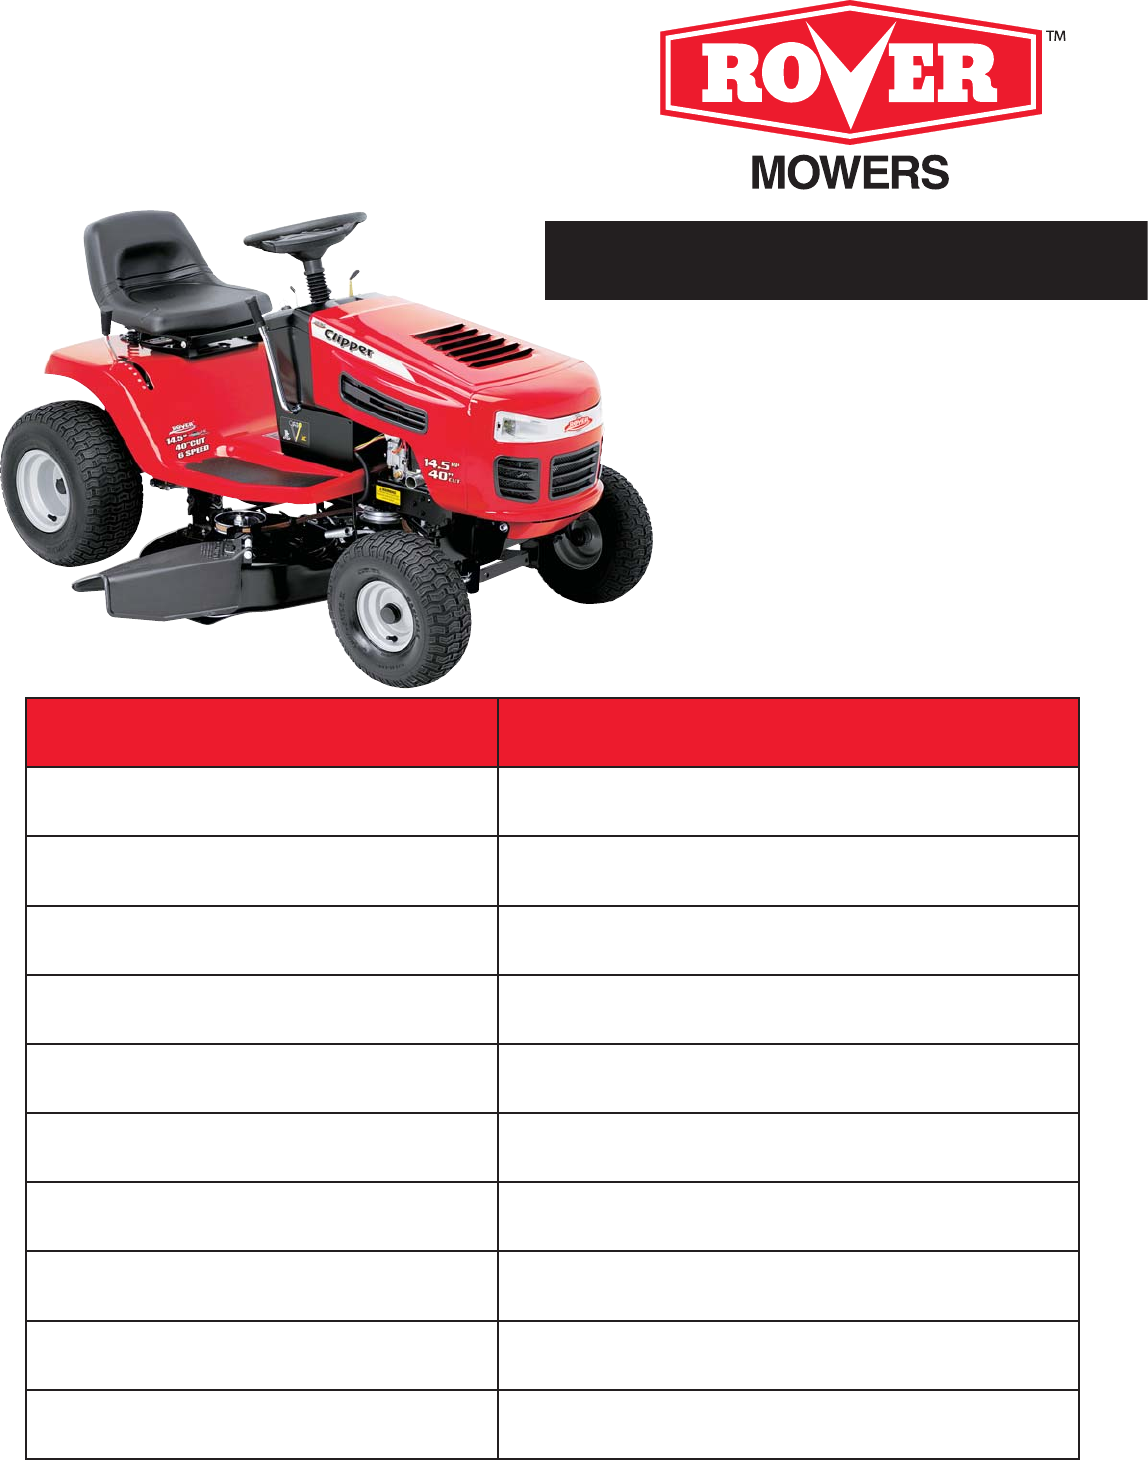 univex lawn mower 405012x108 user guide manualsonline com rh lawnandgarden manualsonline com